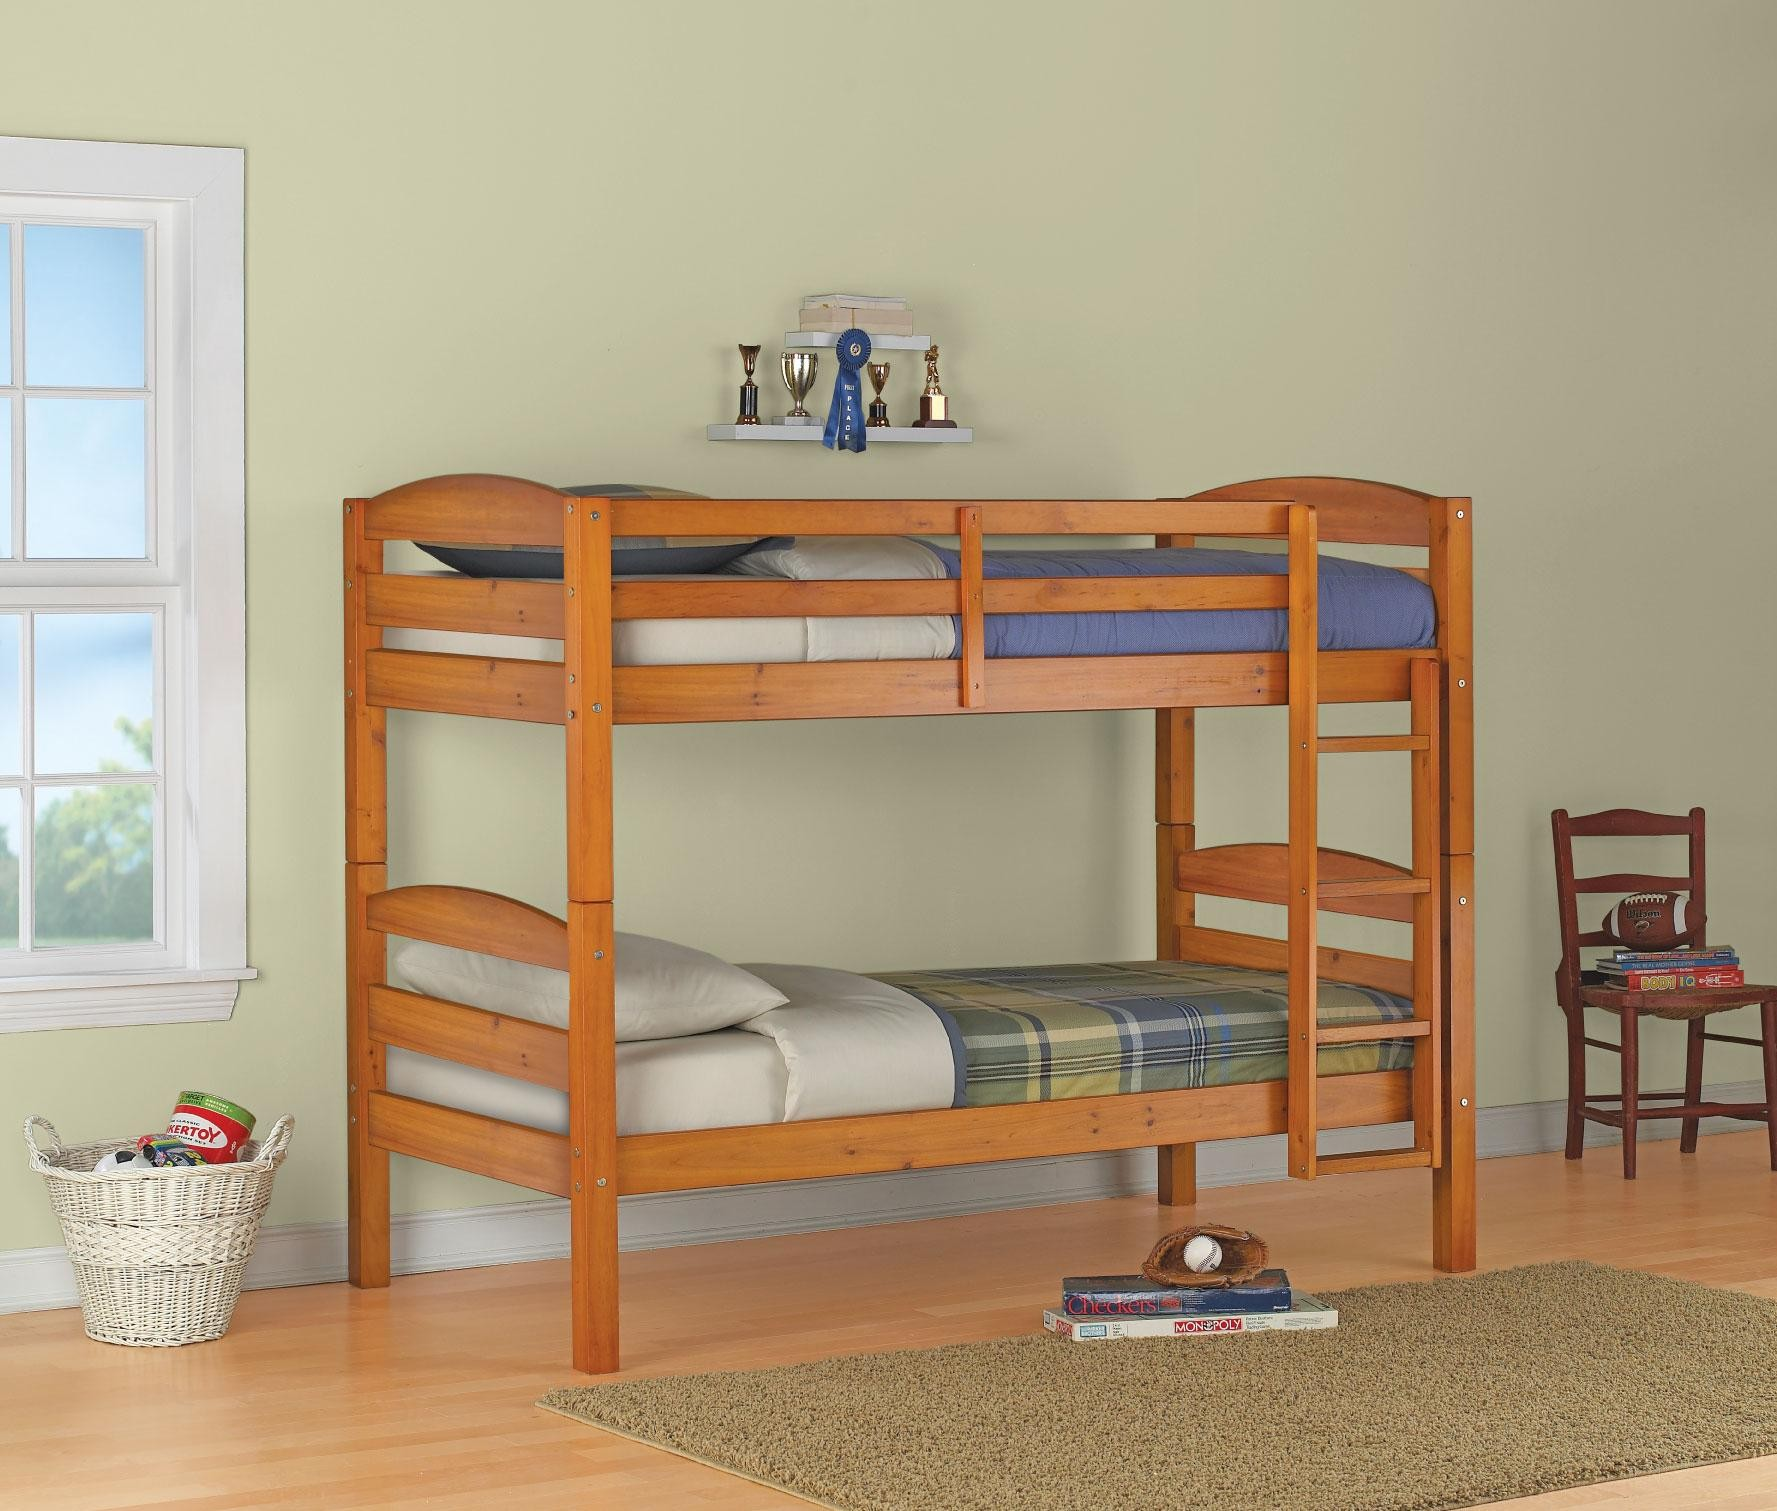 Bunk Beds For Girl And Boy | Bunk Beds For Small Rooms | Adult Loft Bed